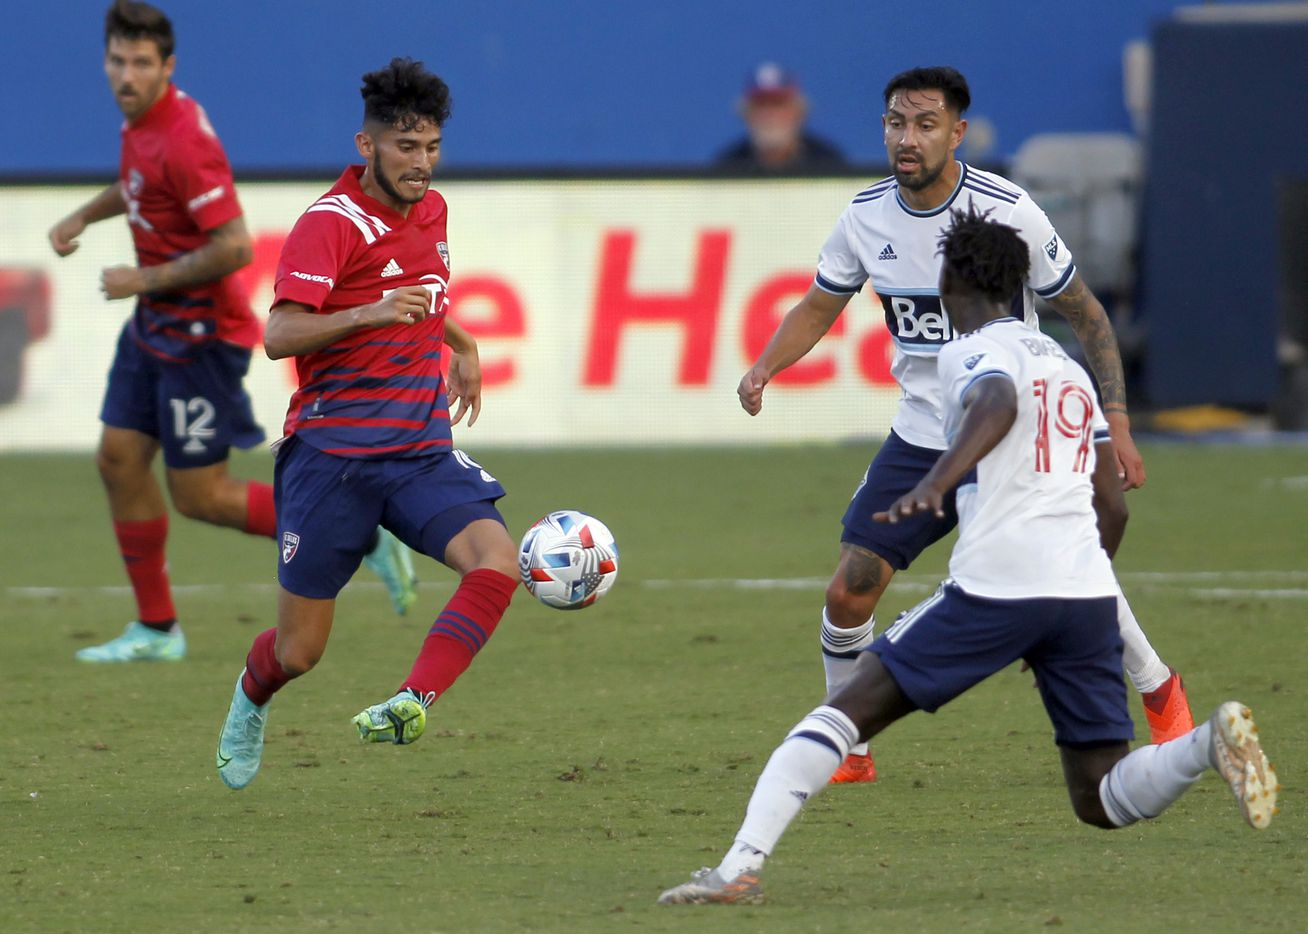 FC Dallas forward Ricardo Pepi (16) controls the ball during first half action against Vancouver. The two Major League Soccer teams played their match at Toyota Stadium in Frisco on July 4, 2021. (Steve Hamm/ Special Contributor)